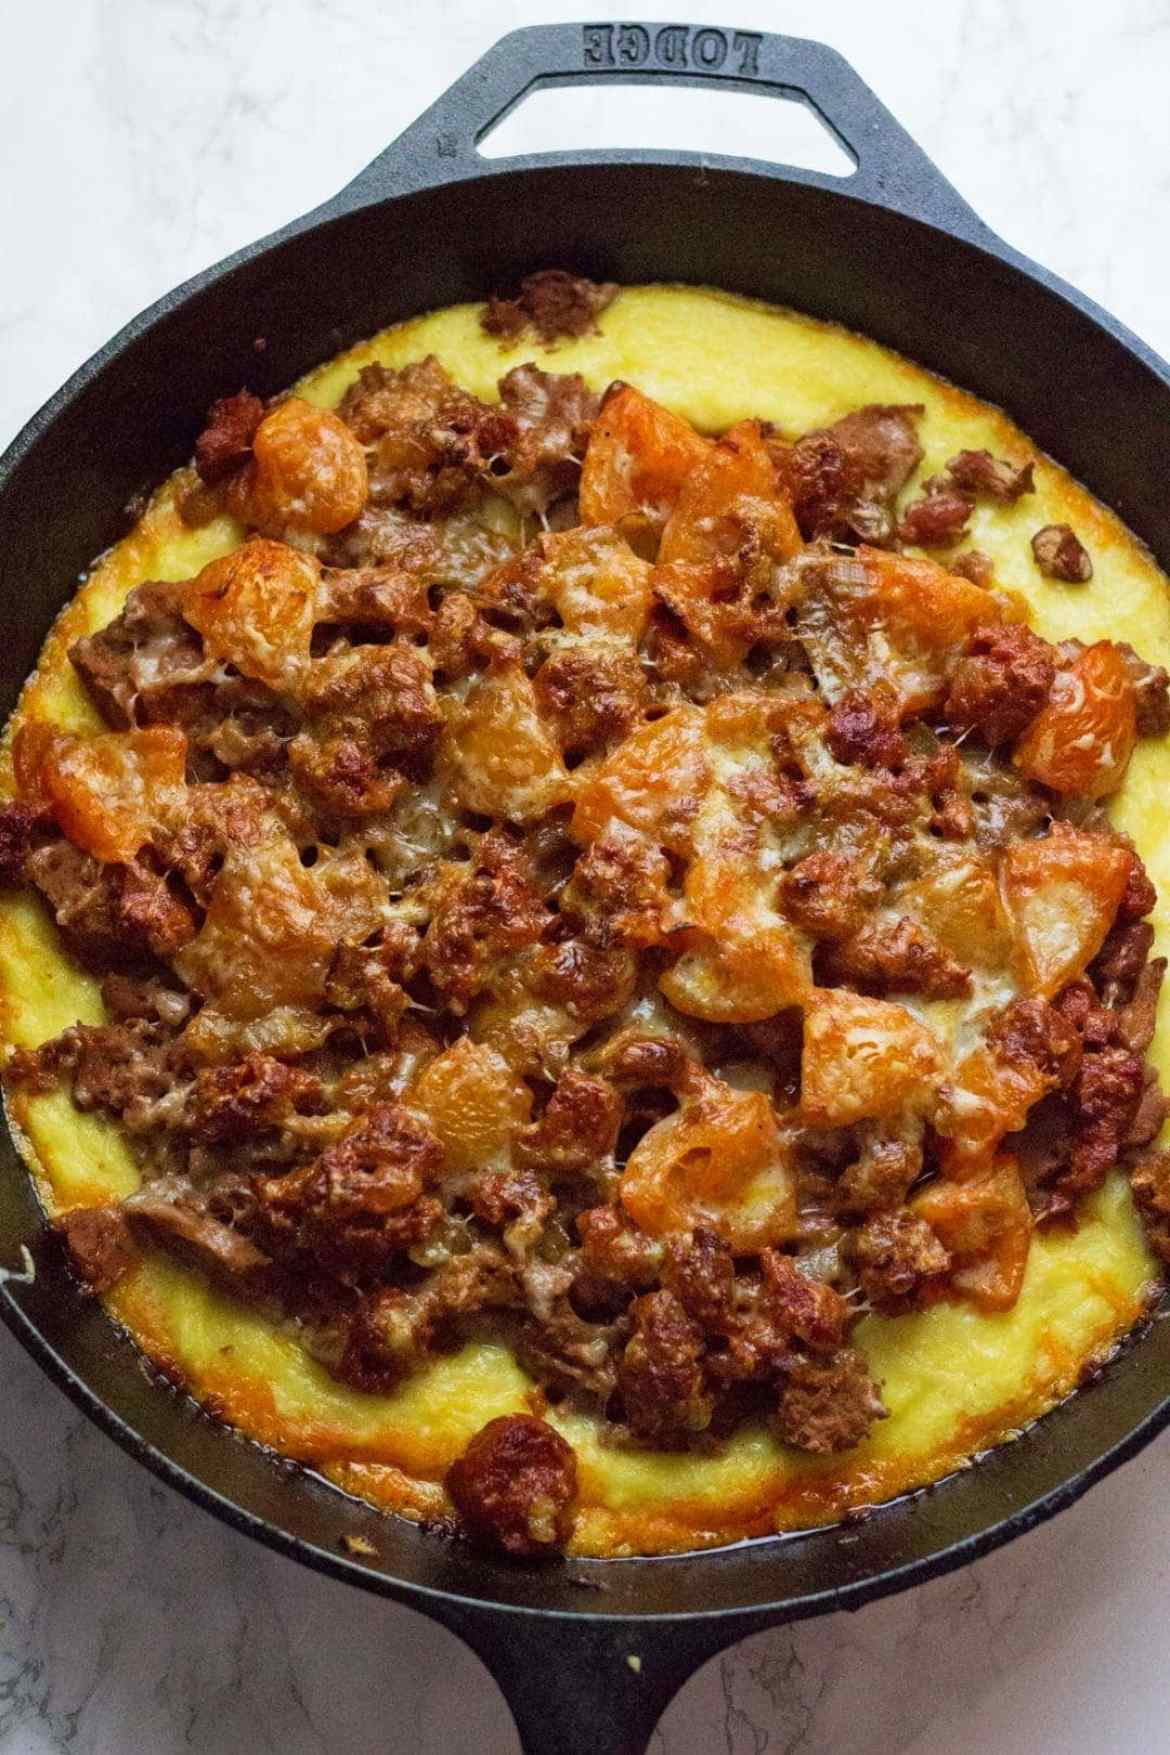 If you're looking for a great gluten free dinner that's on the table in half an hour then this chorizo polenta skillet is the perfect thing!